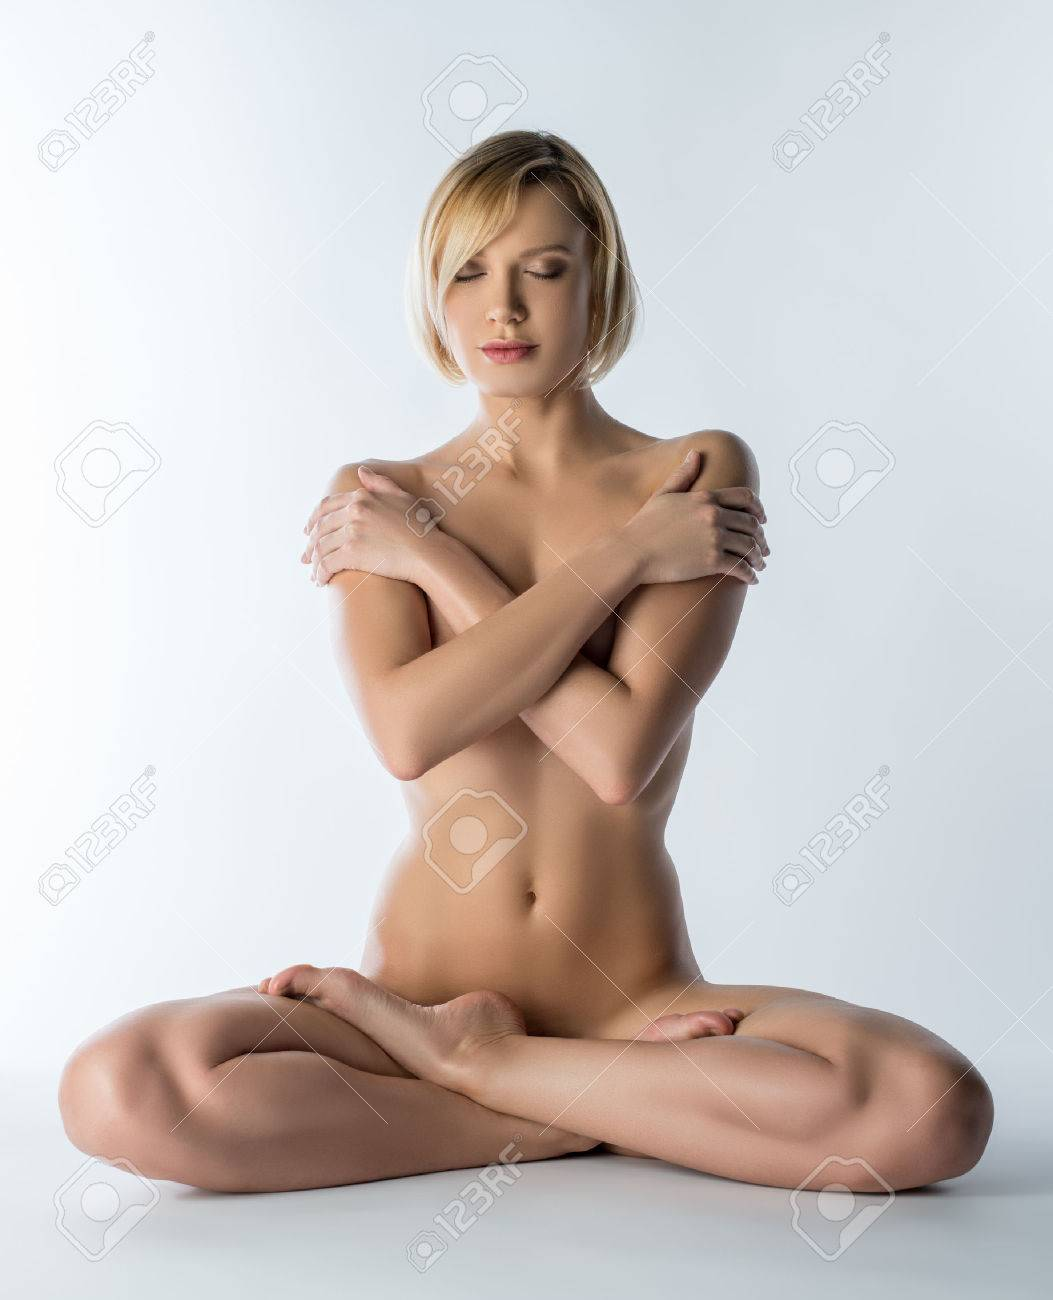 Female naked position pics